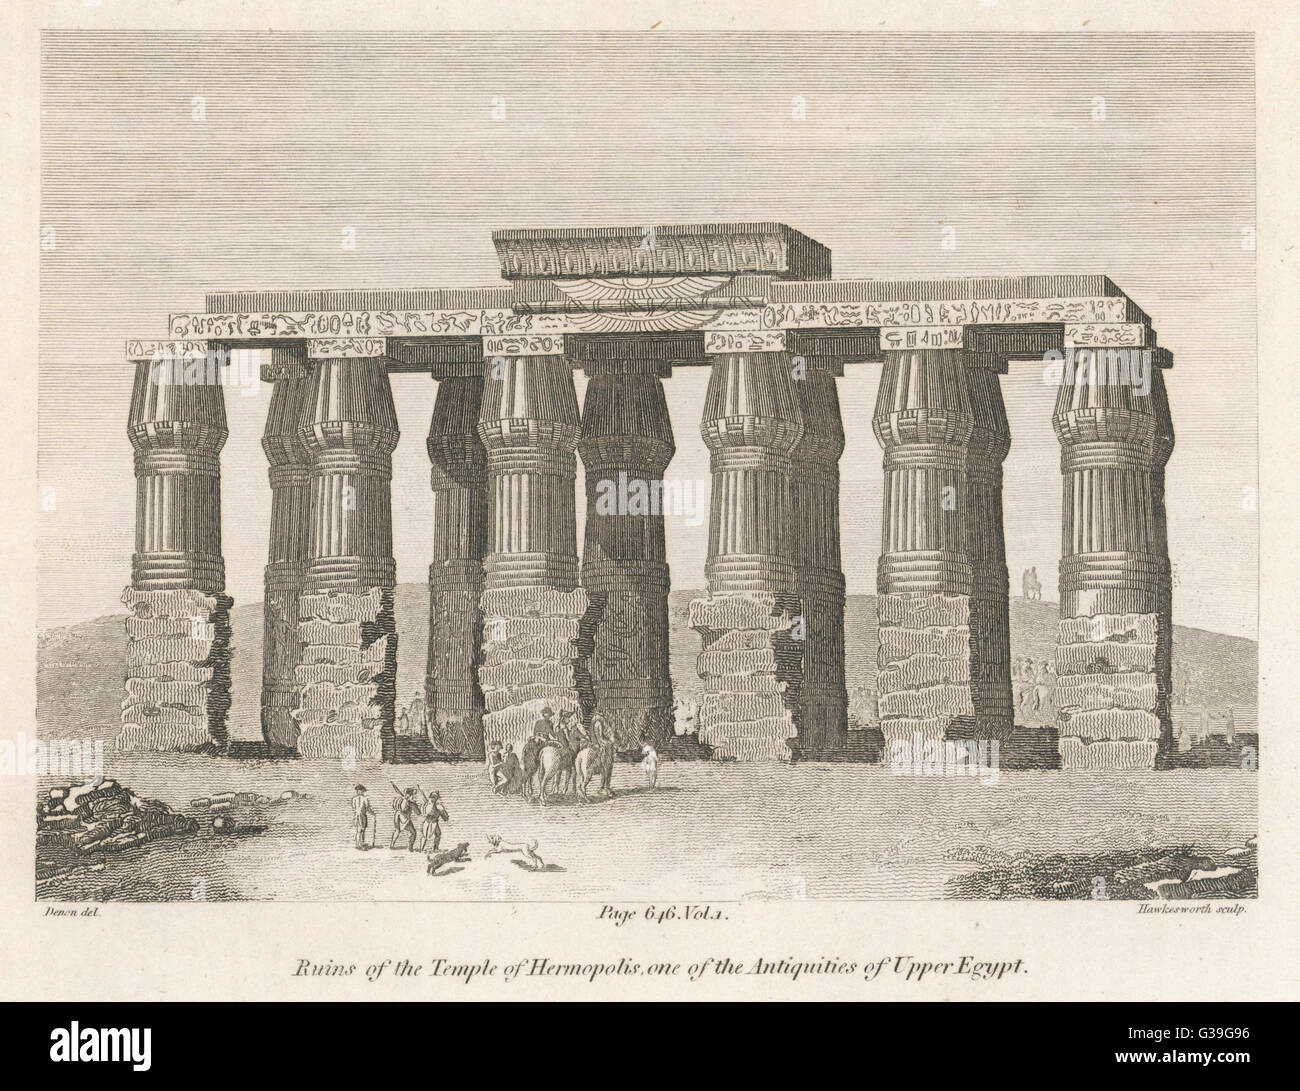 Ruins of the Temple of  Hermopolis, Upper Egypt, one  of the sites surveyed by the  French during Napoleon's - Stock Image